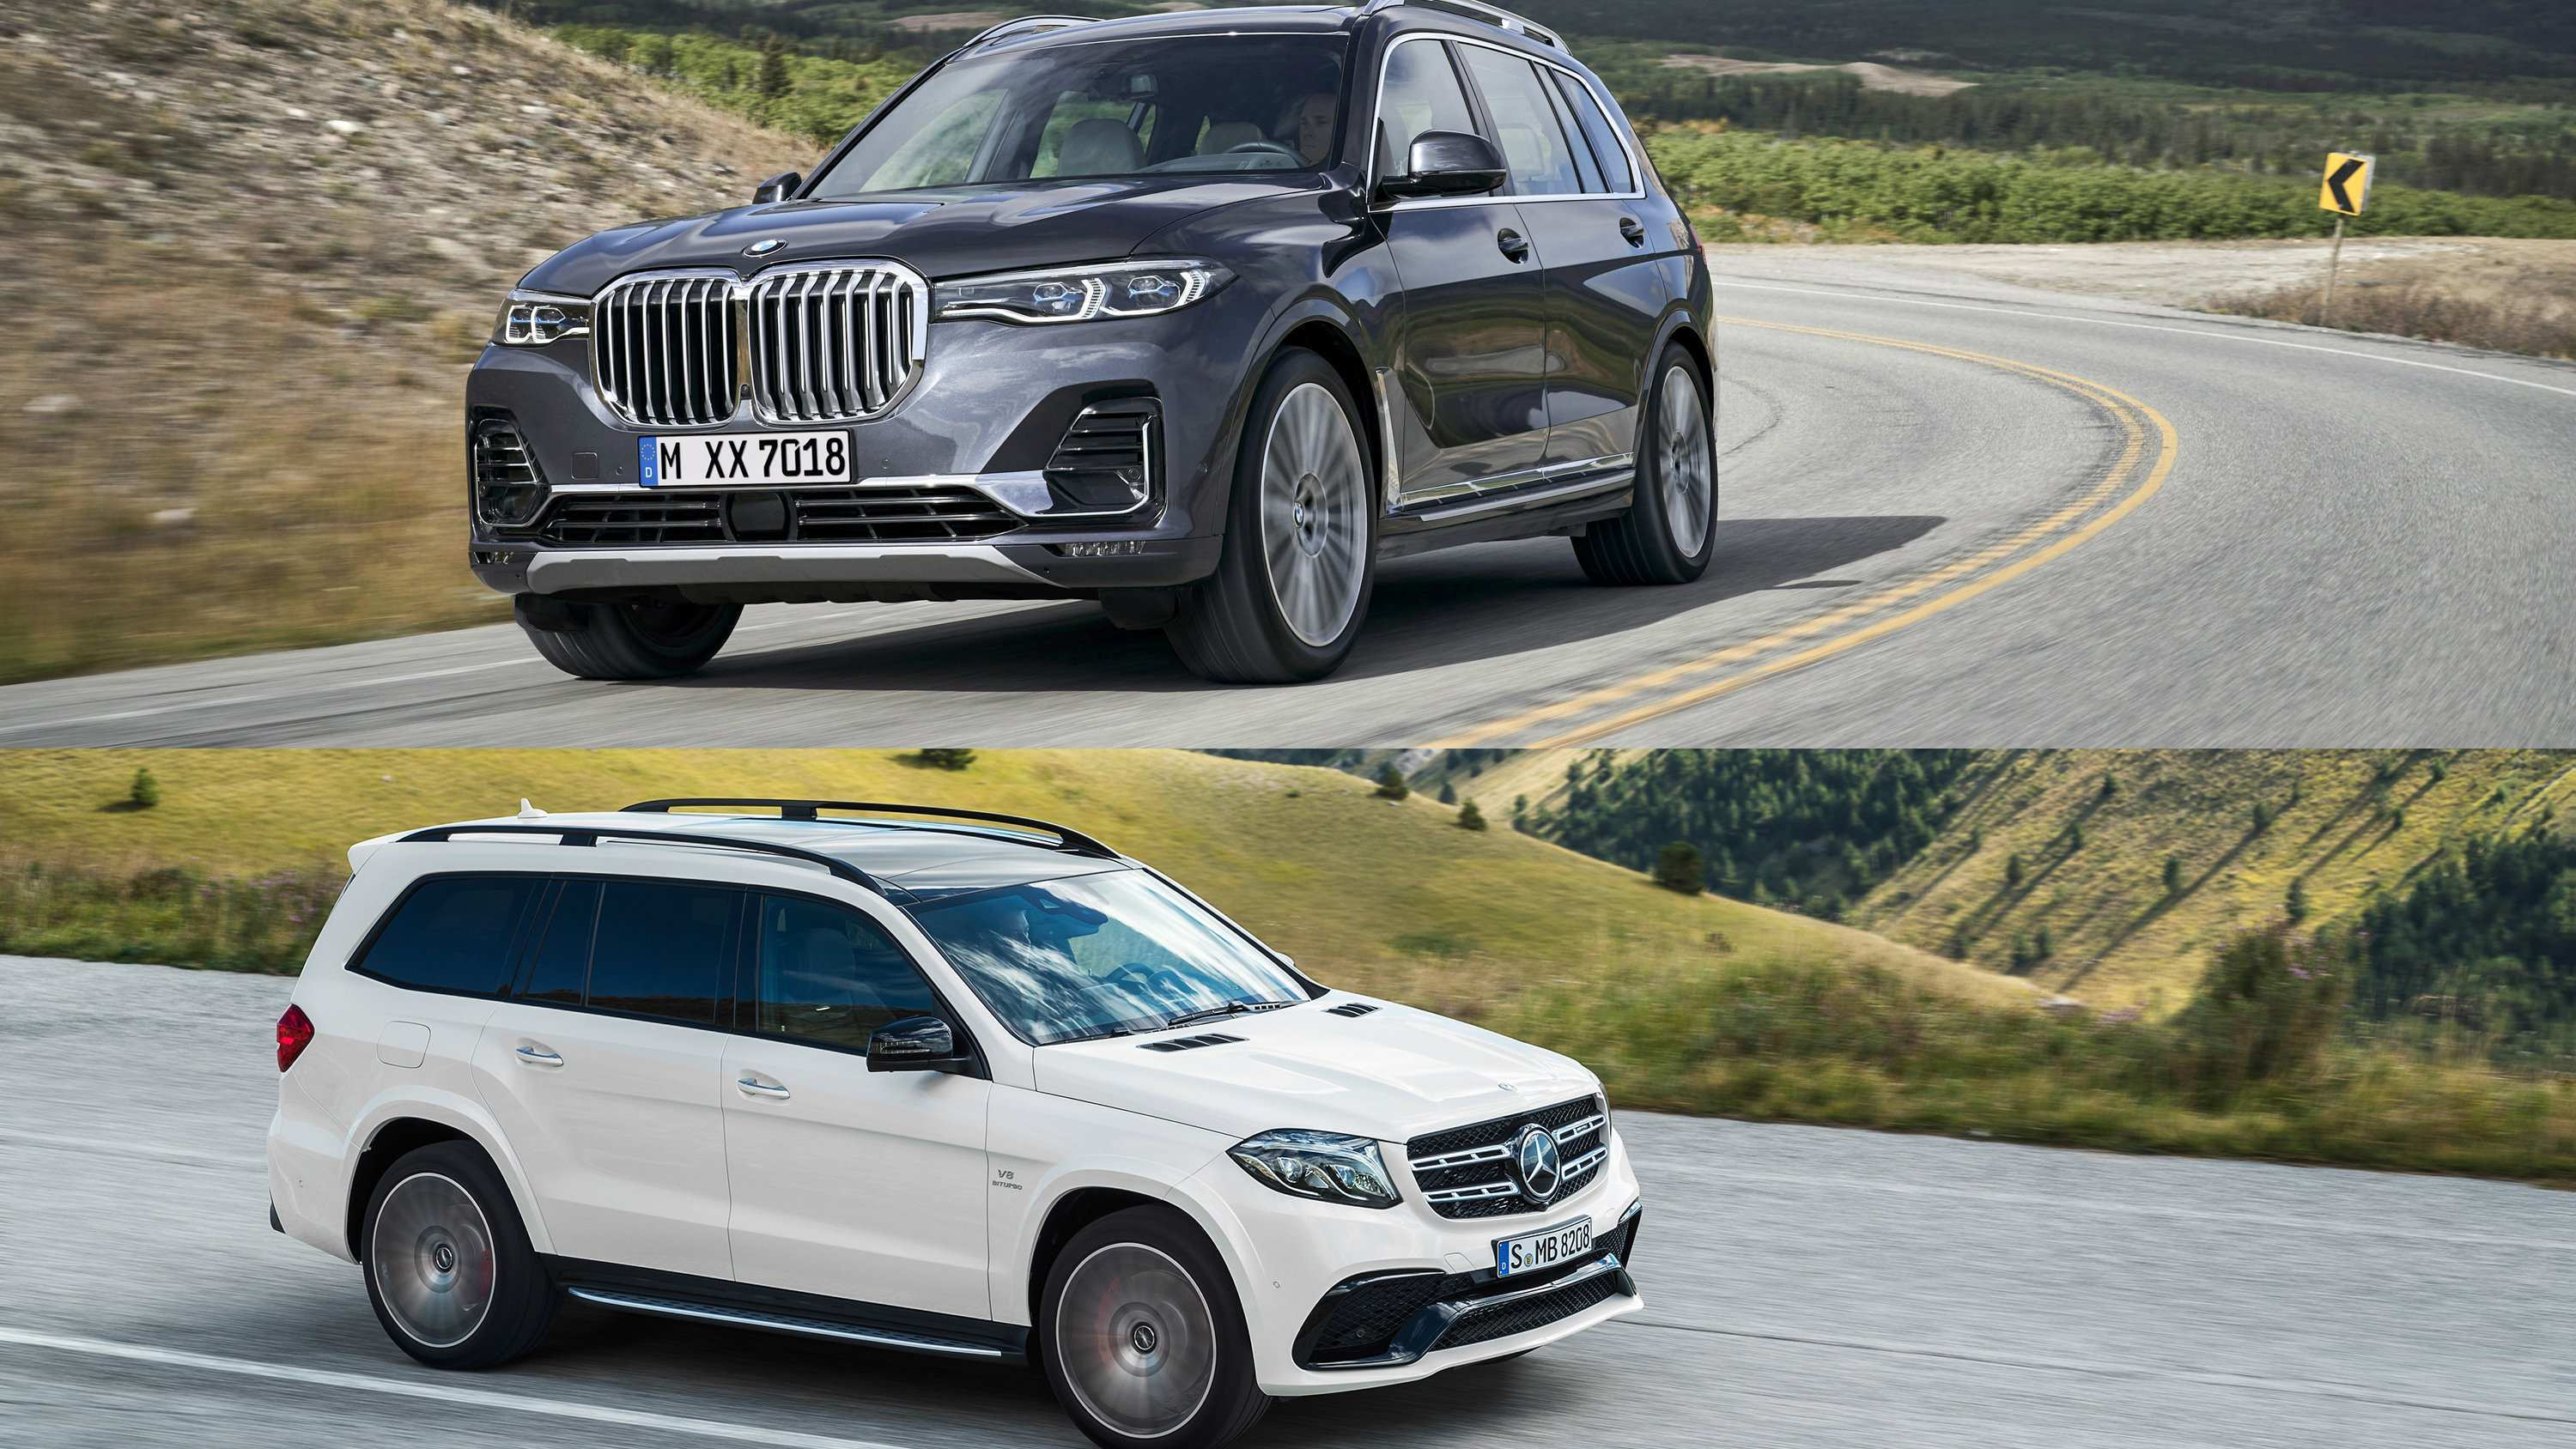 54 The BMW X7 Vs Mercedes Gls 2020 Overview